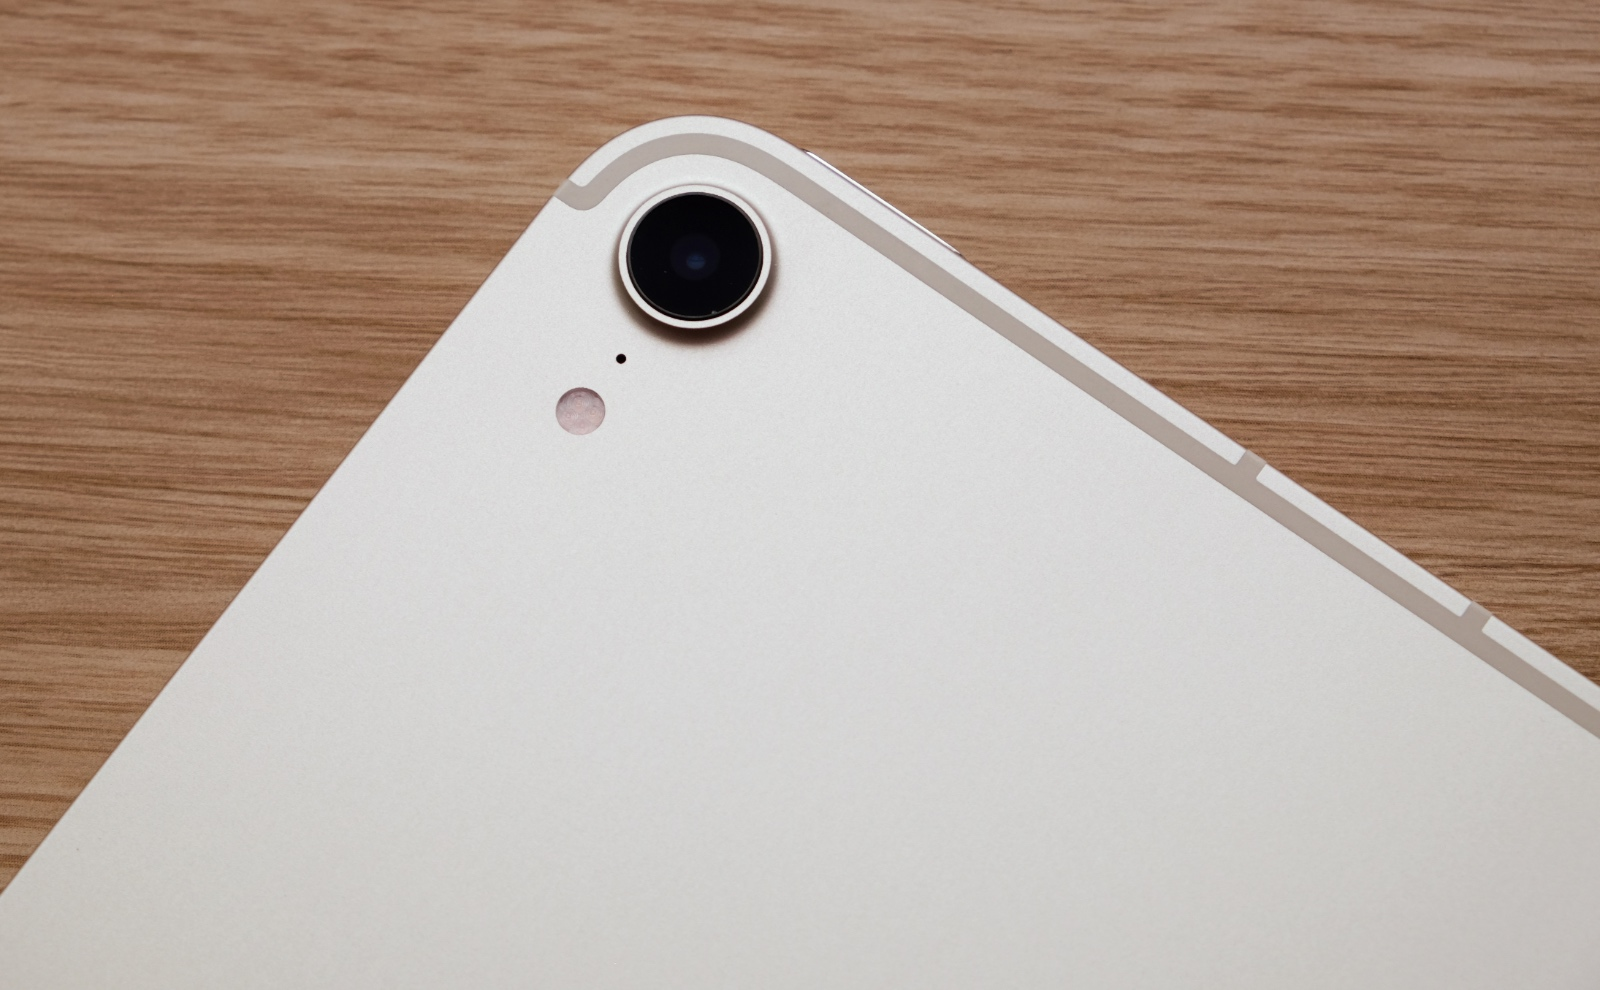 The 12-megapixel rear camera is decent but can't hold a candle to newer phones.